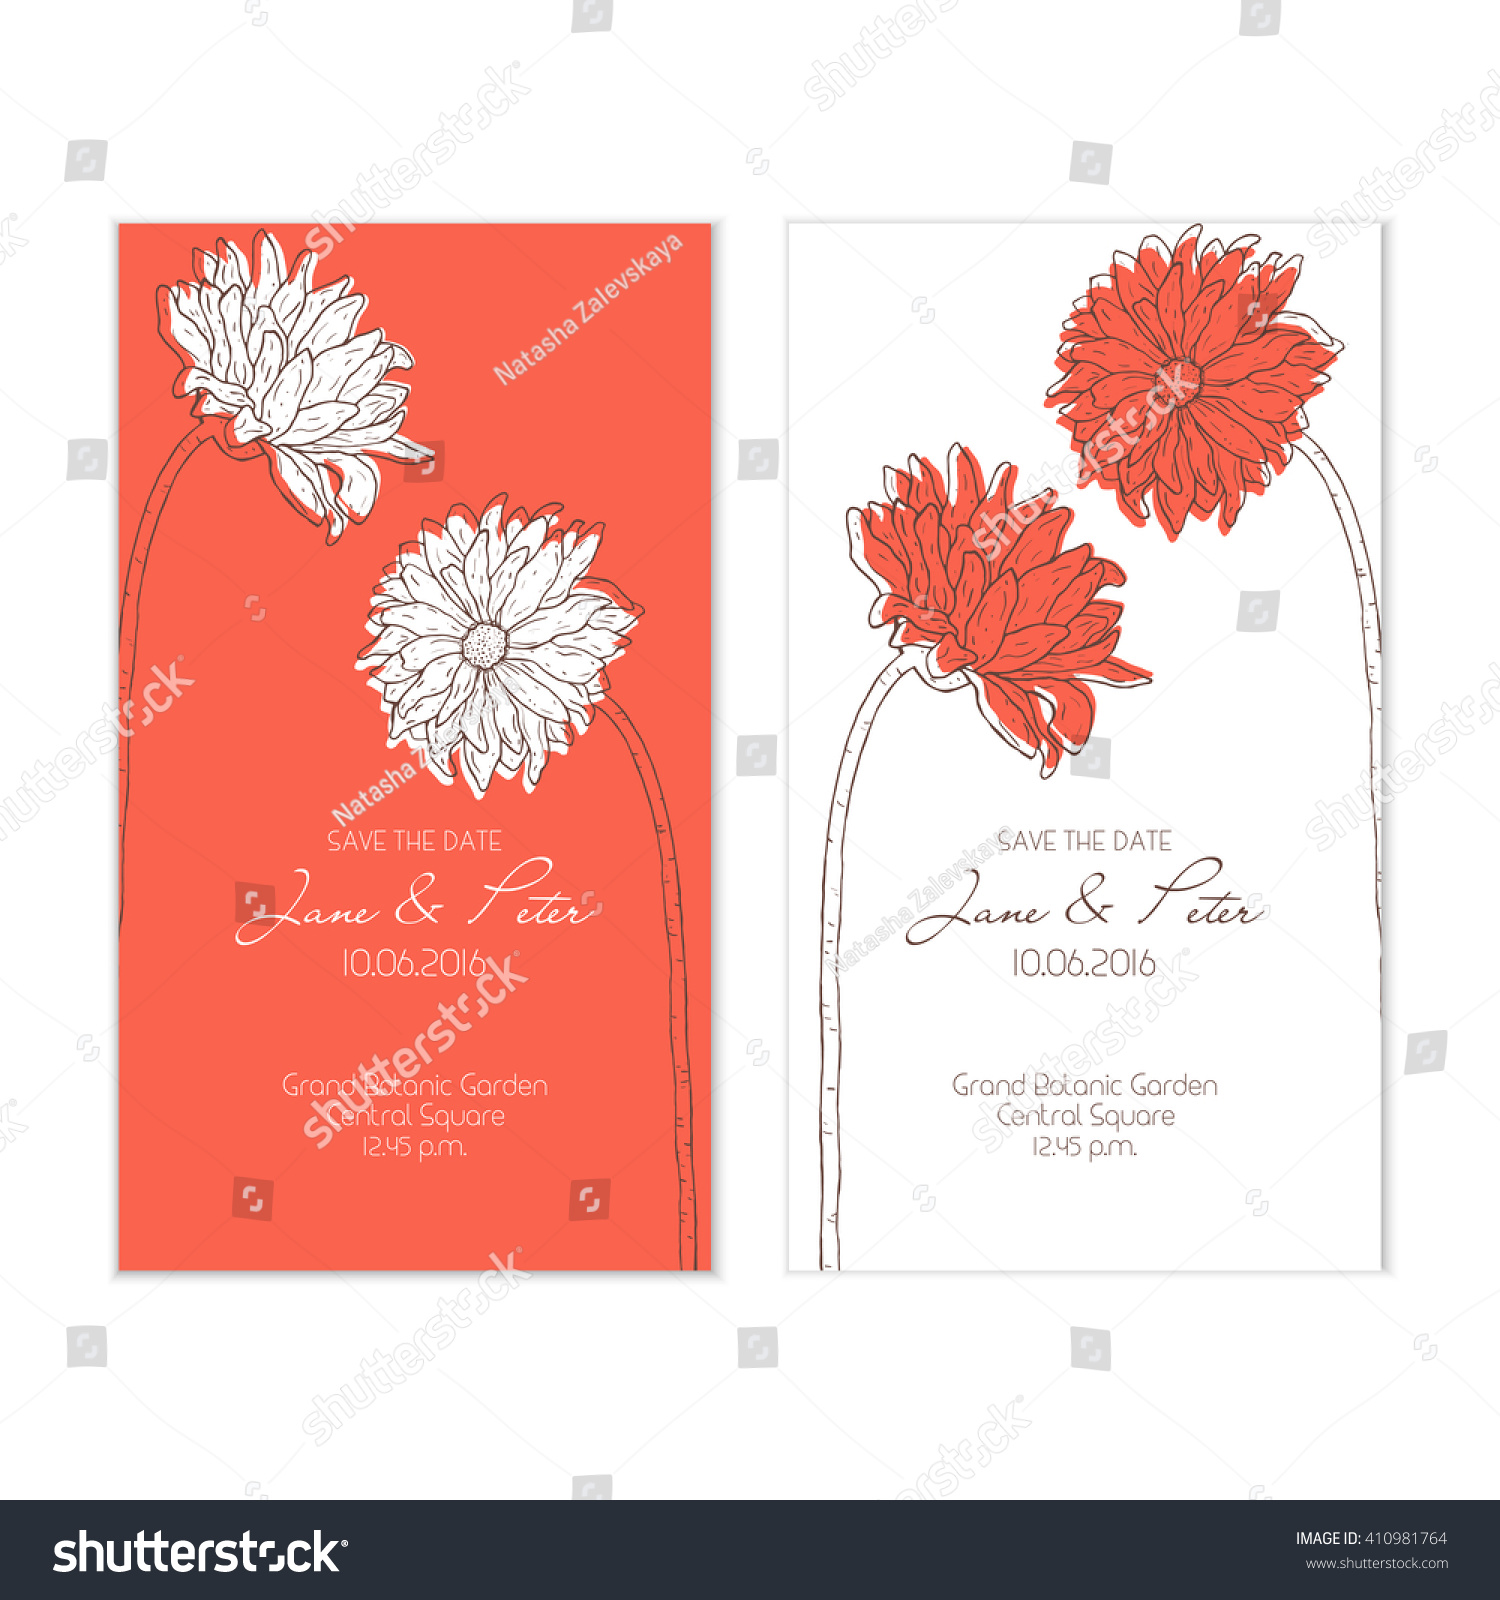 Floral Wedding Set Red Color Beautiful Stock Vector 410981764 ...